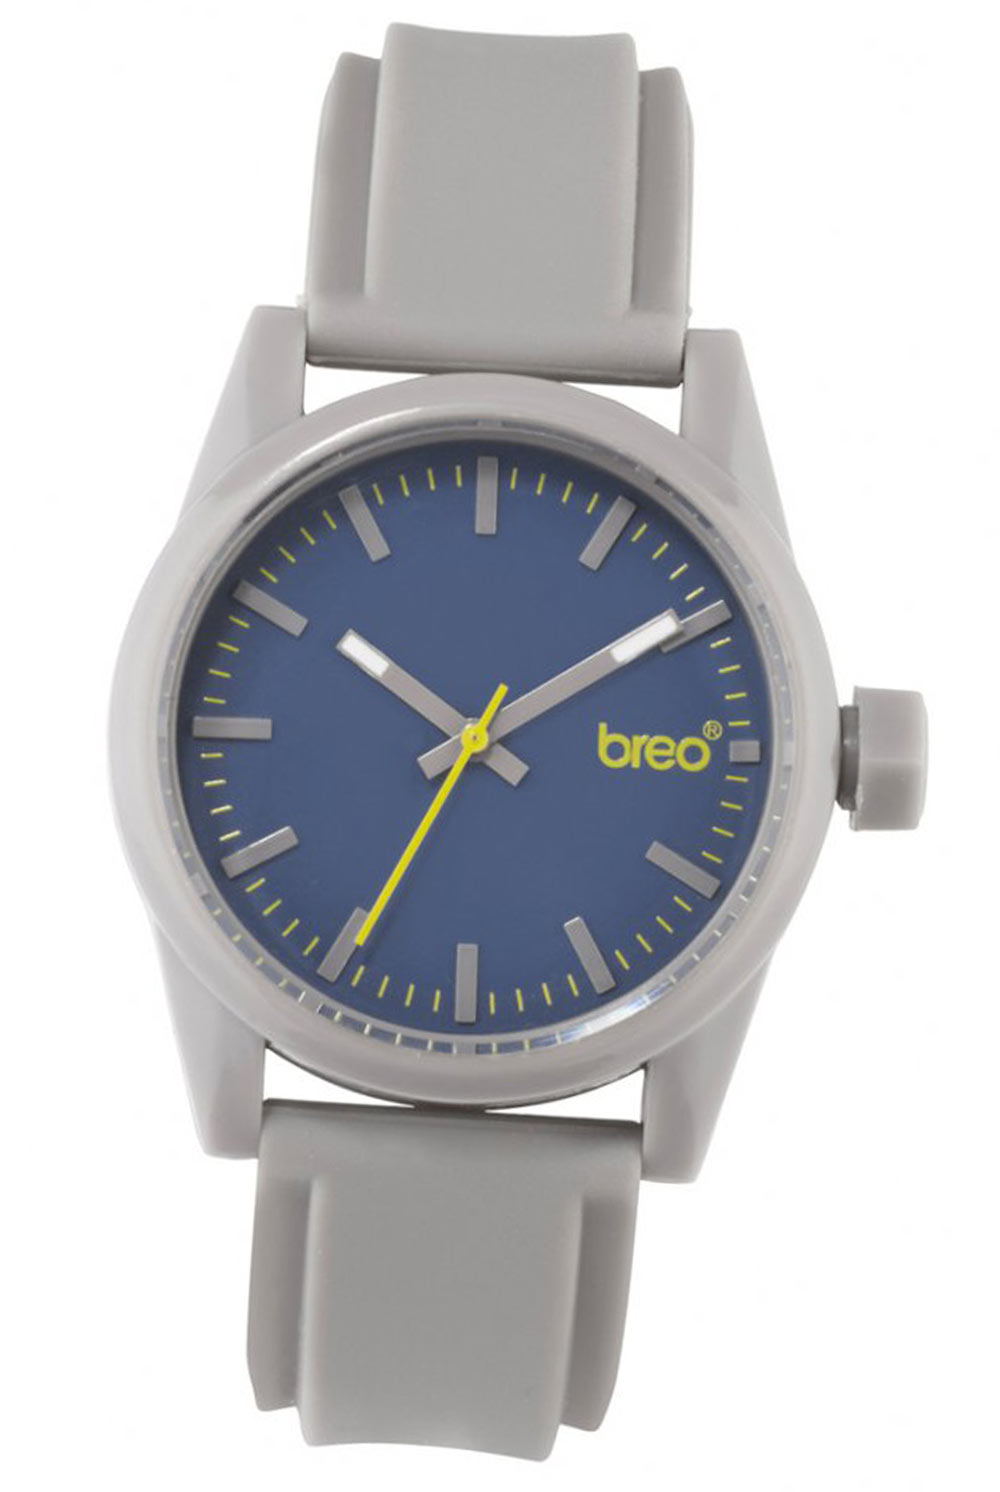 Breo Unisex Analog Watches at Rs.3300